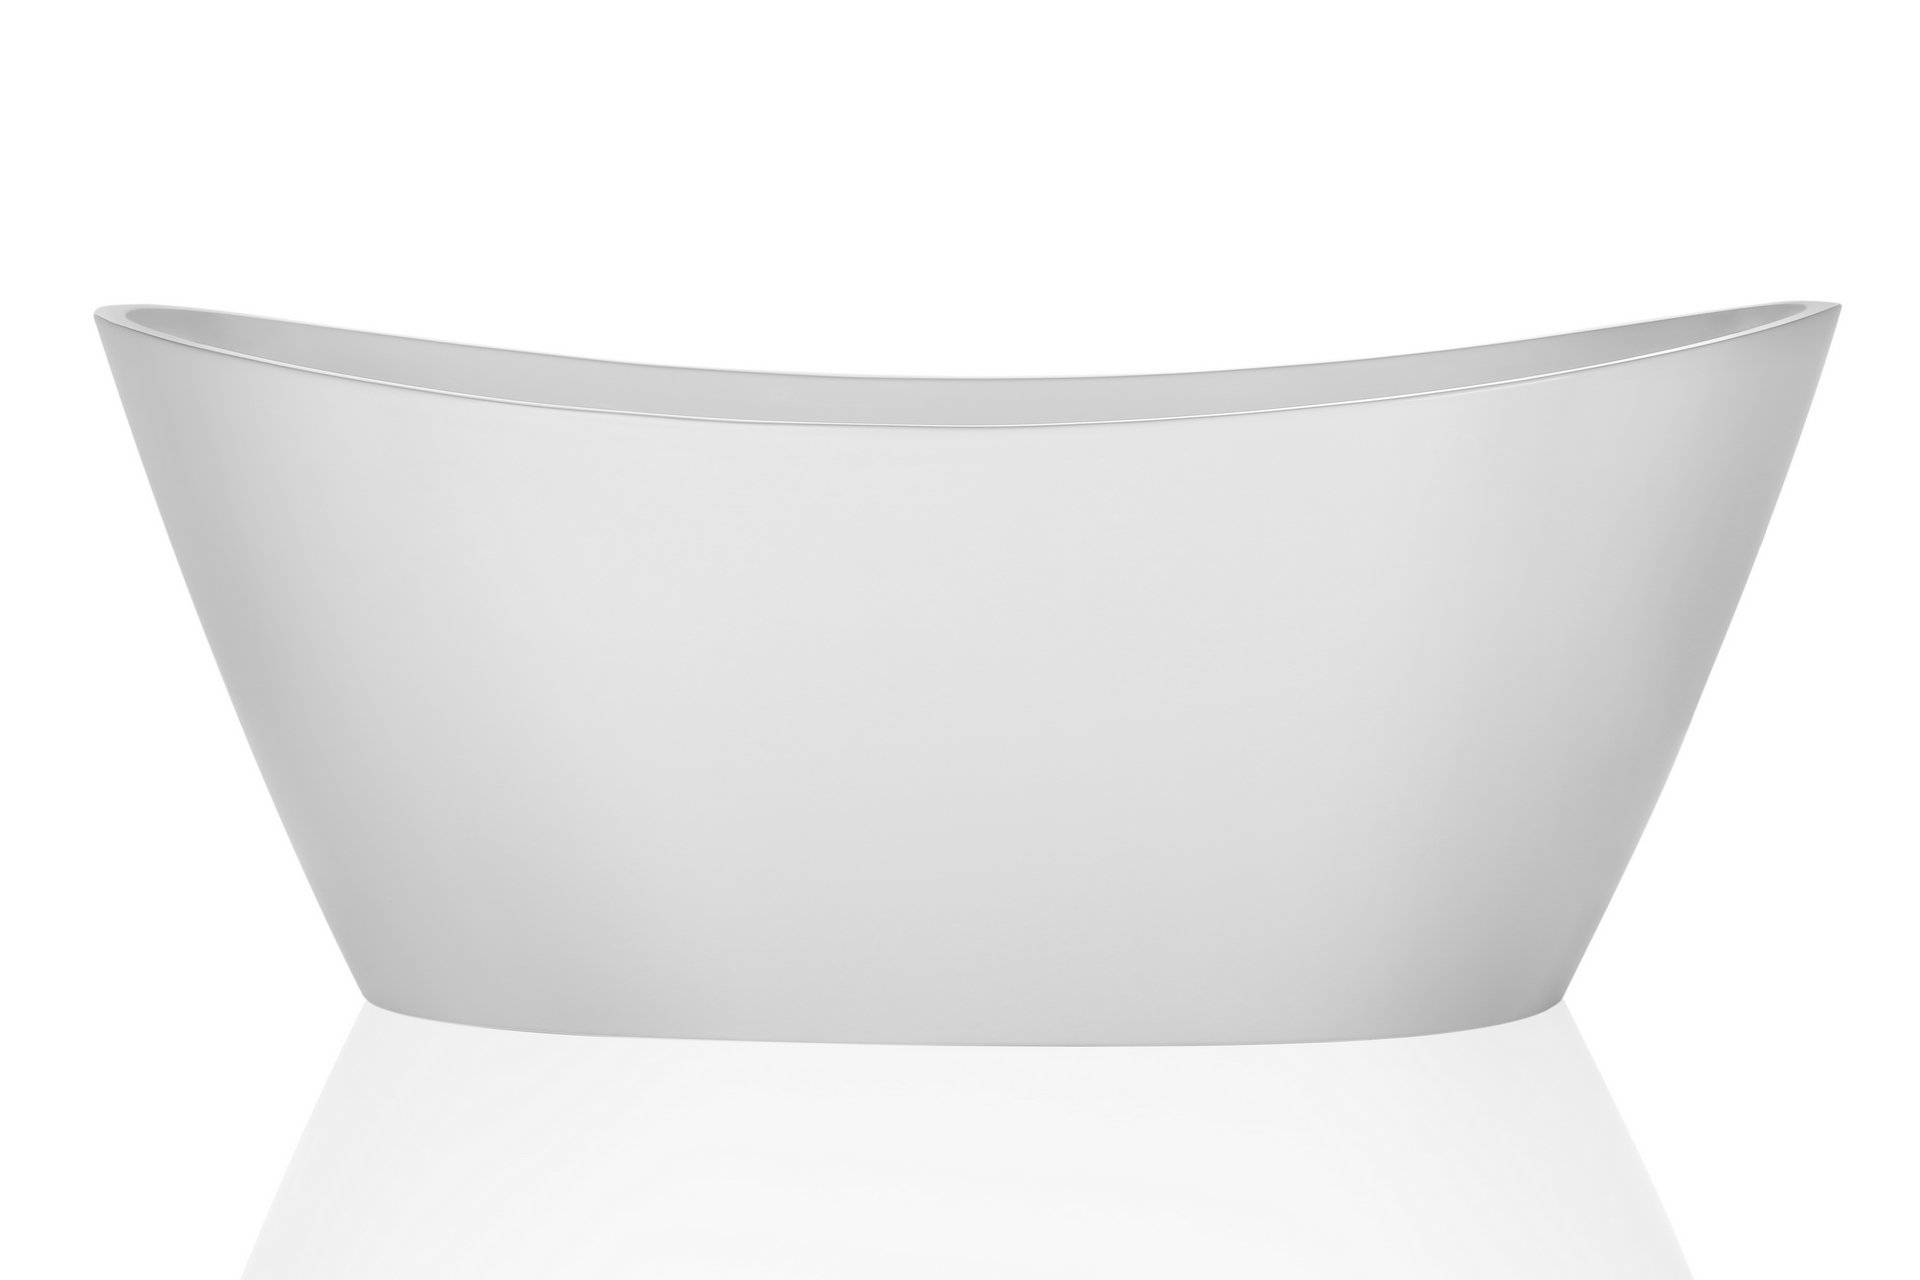 Empava 67'' Luxury Freestanding Acrylic Soaking SPA Tub Modern Stand Alone Bathtubs with Custom Contemporary Design EMPV-FT1518